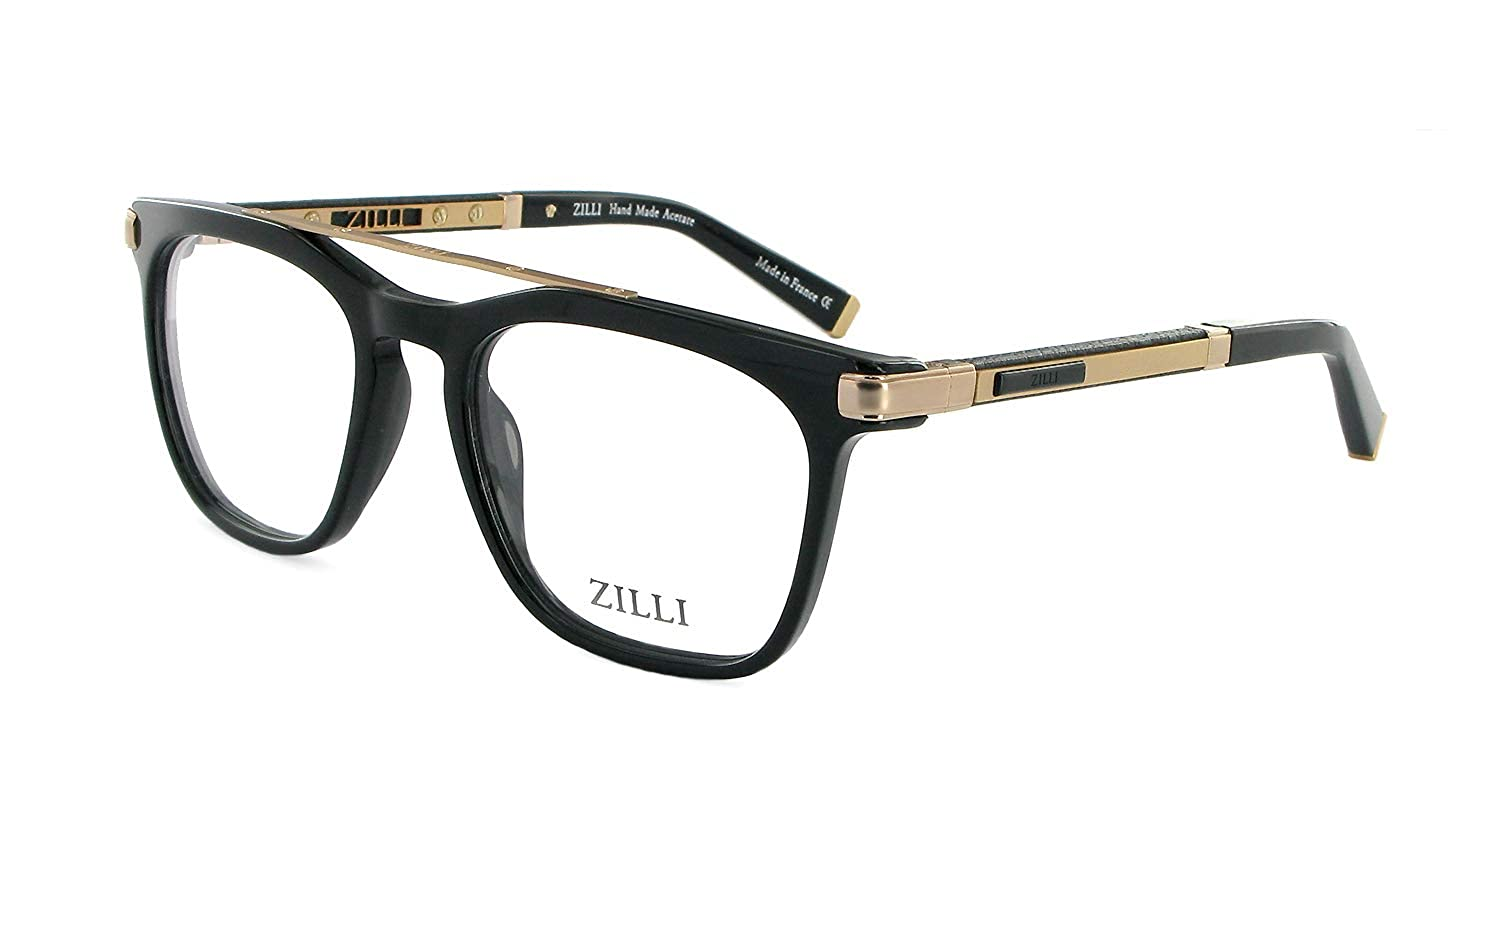 6d1bf9a7e06 Amazon.com  ZILLI Luxurious Eyewear ZI 60018 54-17-140 Made with Crocodile  Leather and Titanium HAND MADE IN FRANCE